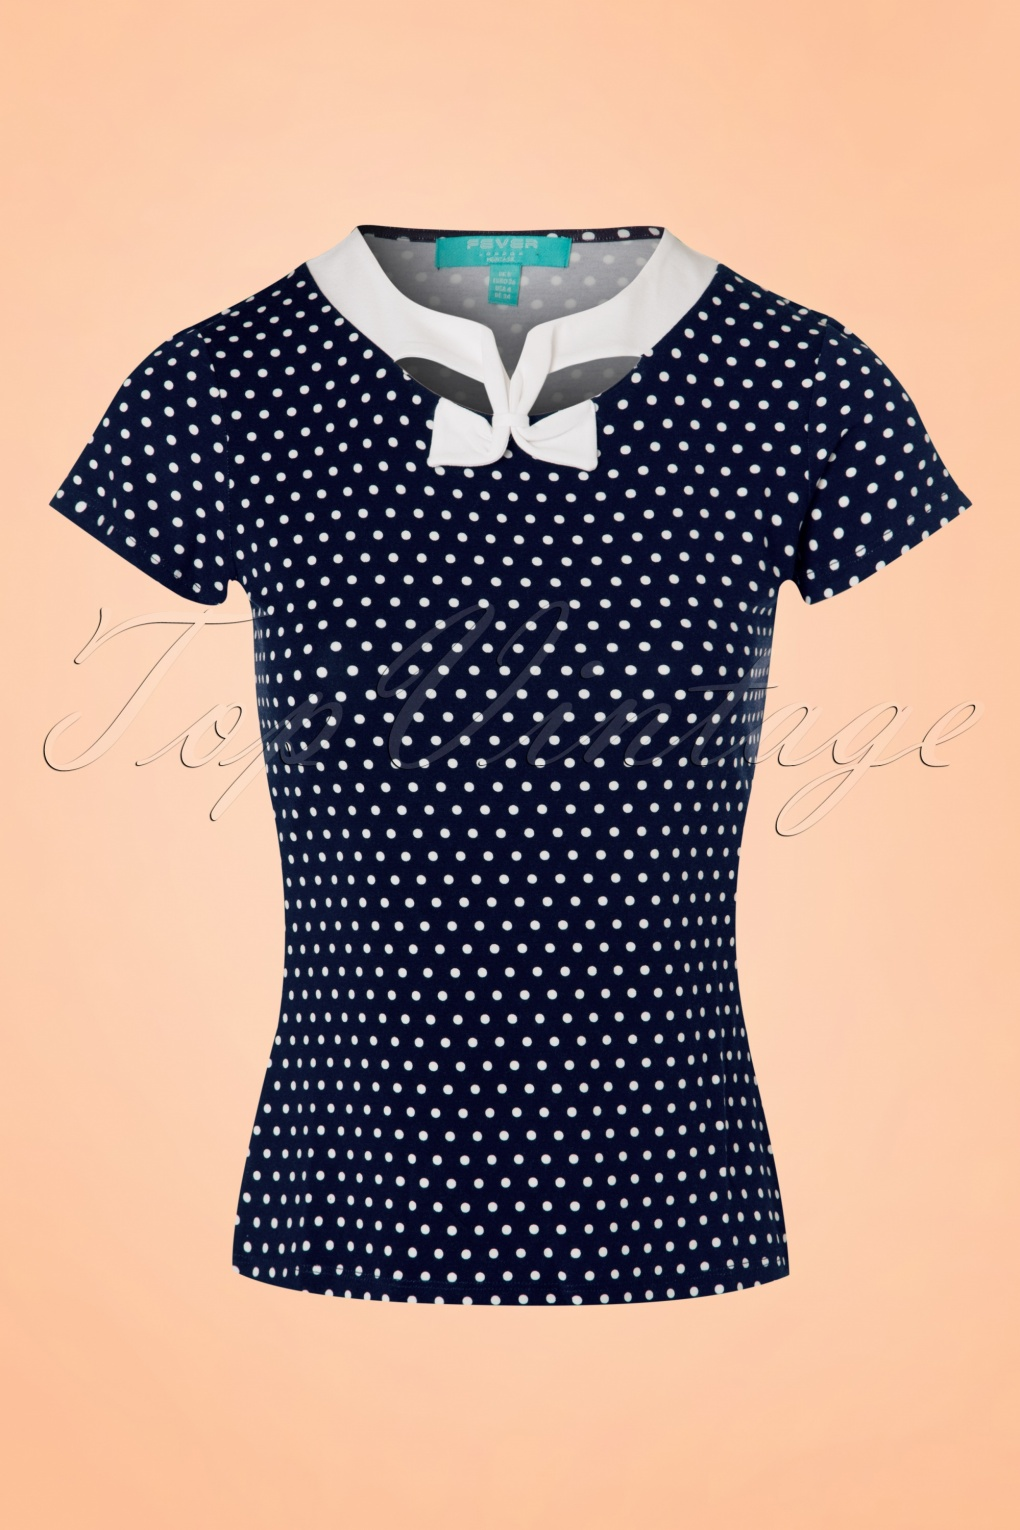 1950s Rockabilly & Pinup Tops, Shirts, Blouses 50s Holywell Polkadot Top in Navy £34.61 AT vintagedancer.com